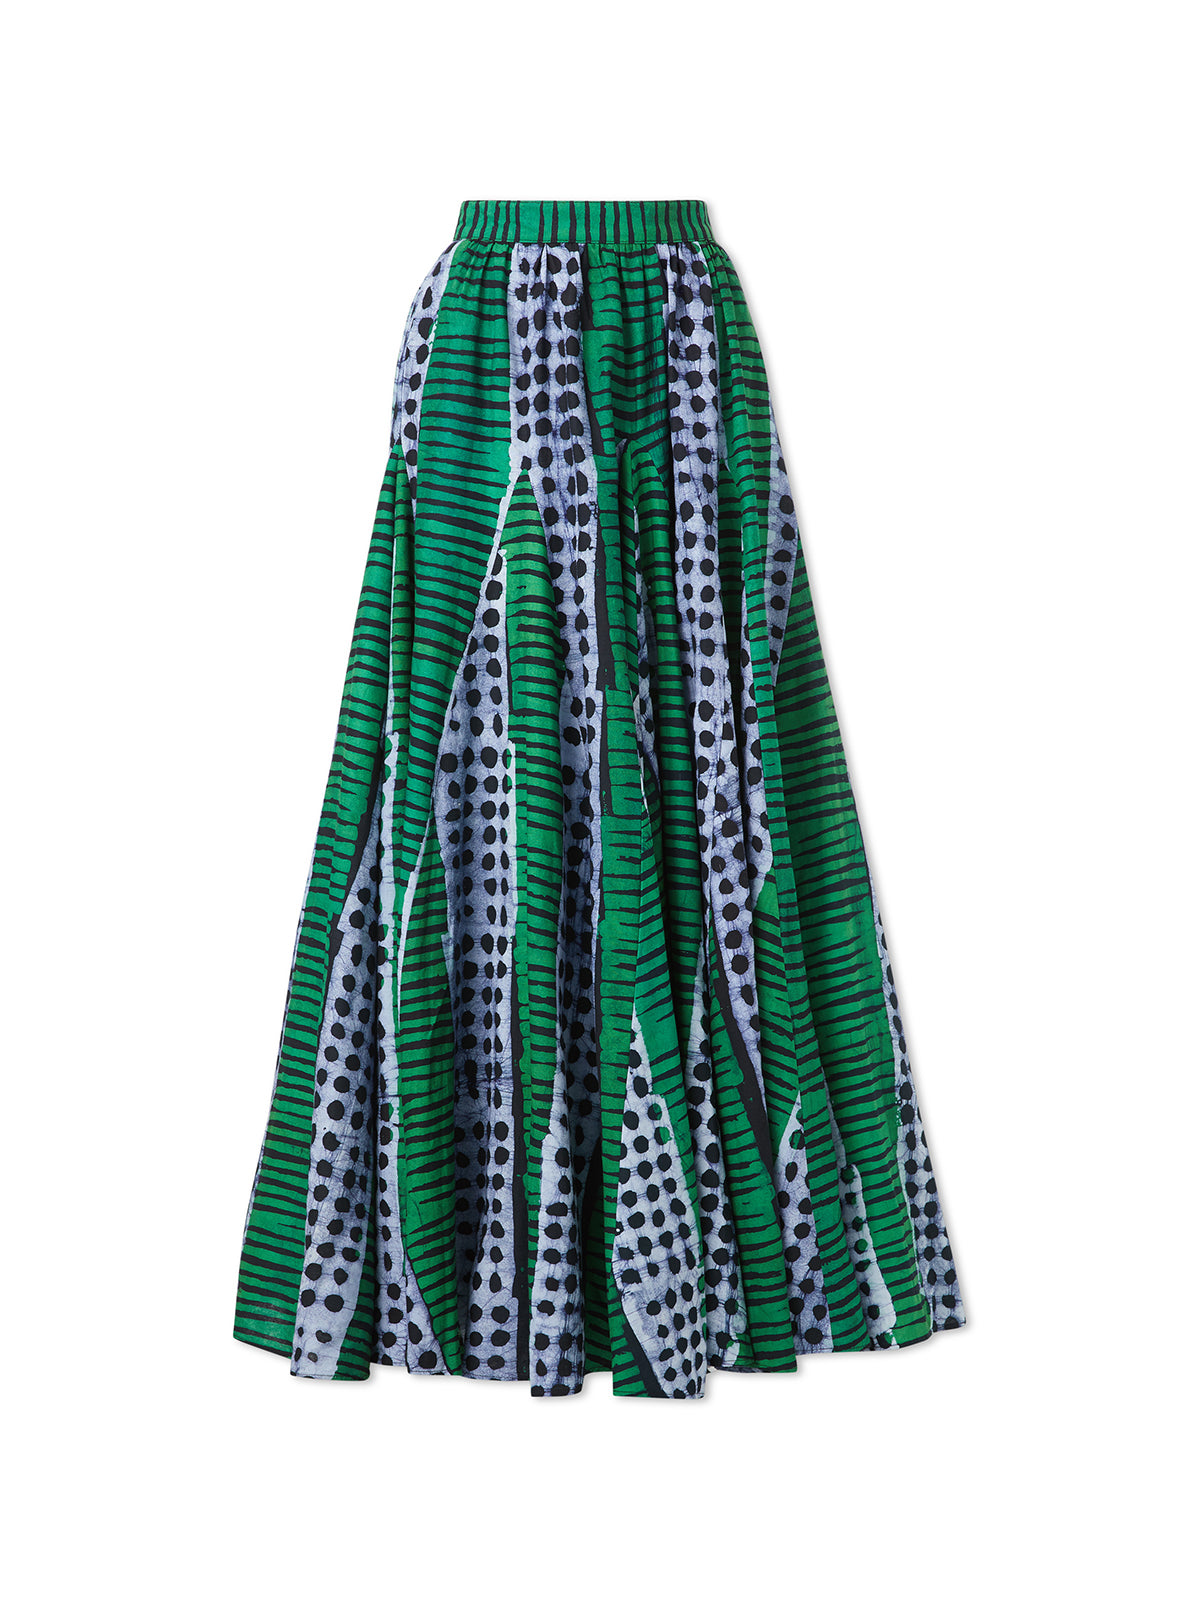 Green Aggie Alicia Skirt